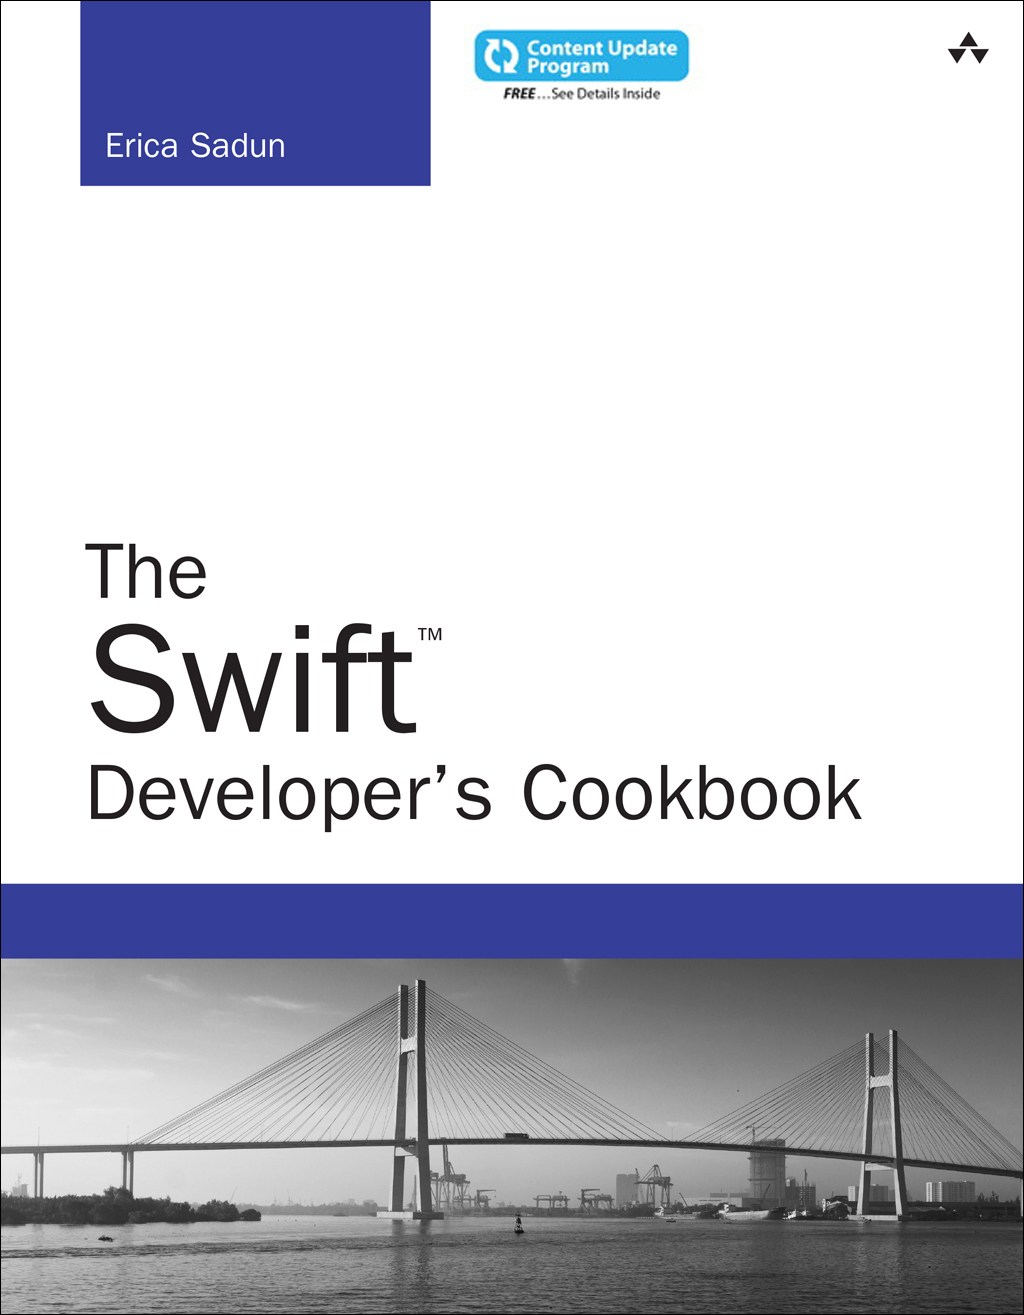 The Swift Developer's Cookbook (includes Content Update Program)